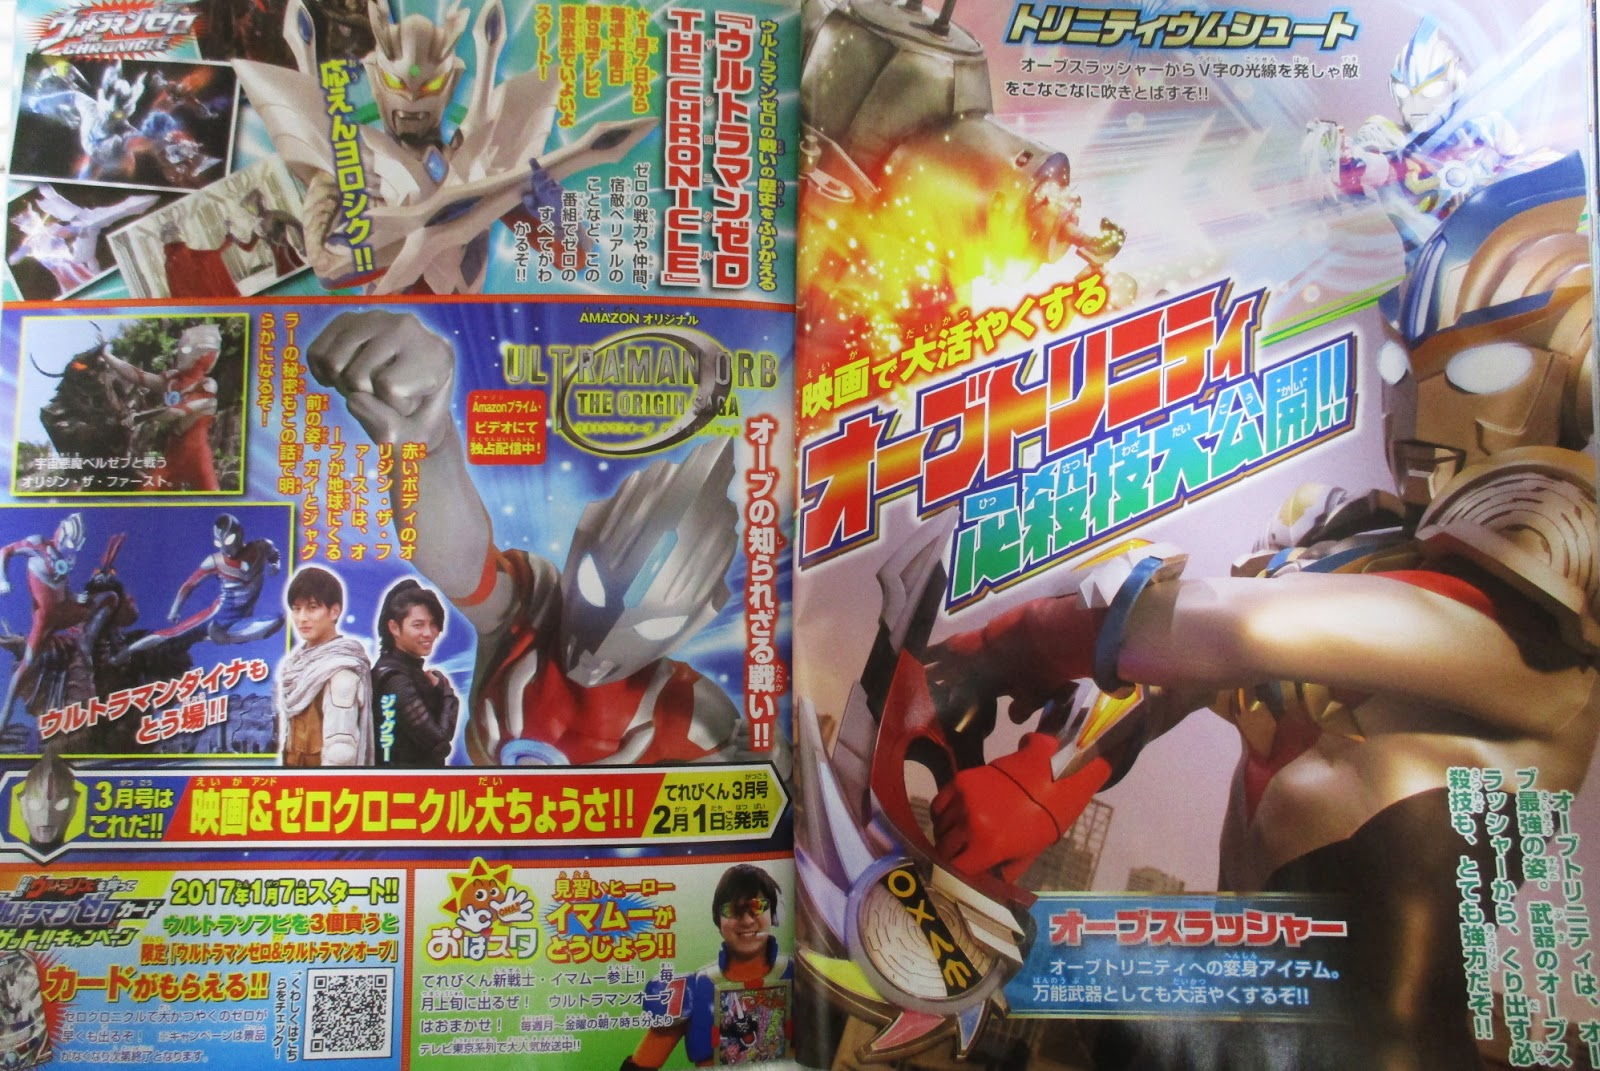 Ultraman Orb The Movie Lend Me Power Of Your Bonds Updates Spinner Iron Hiro Some Scenes From New Spin Off Series Origin Saga That Is Streamed On Amazon Prime Stay Tune For More